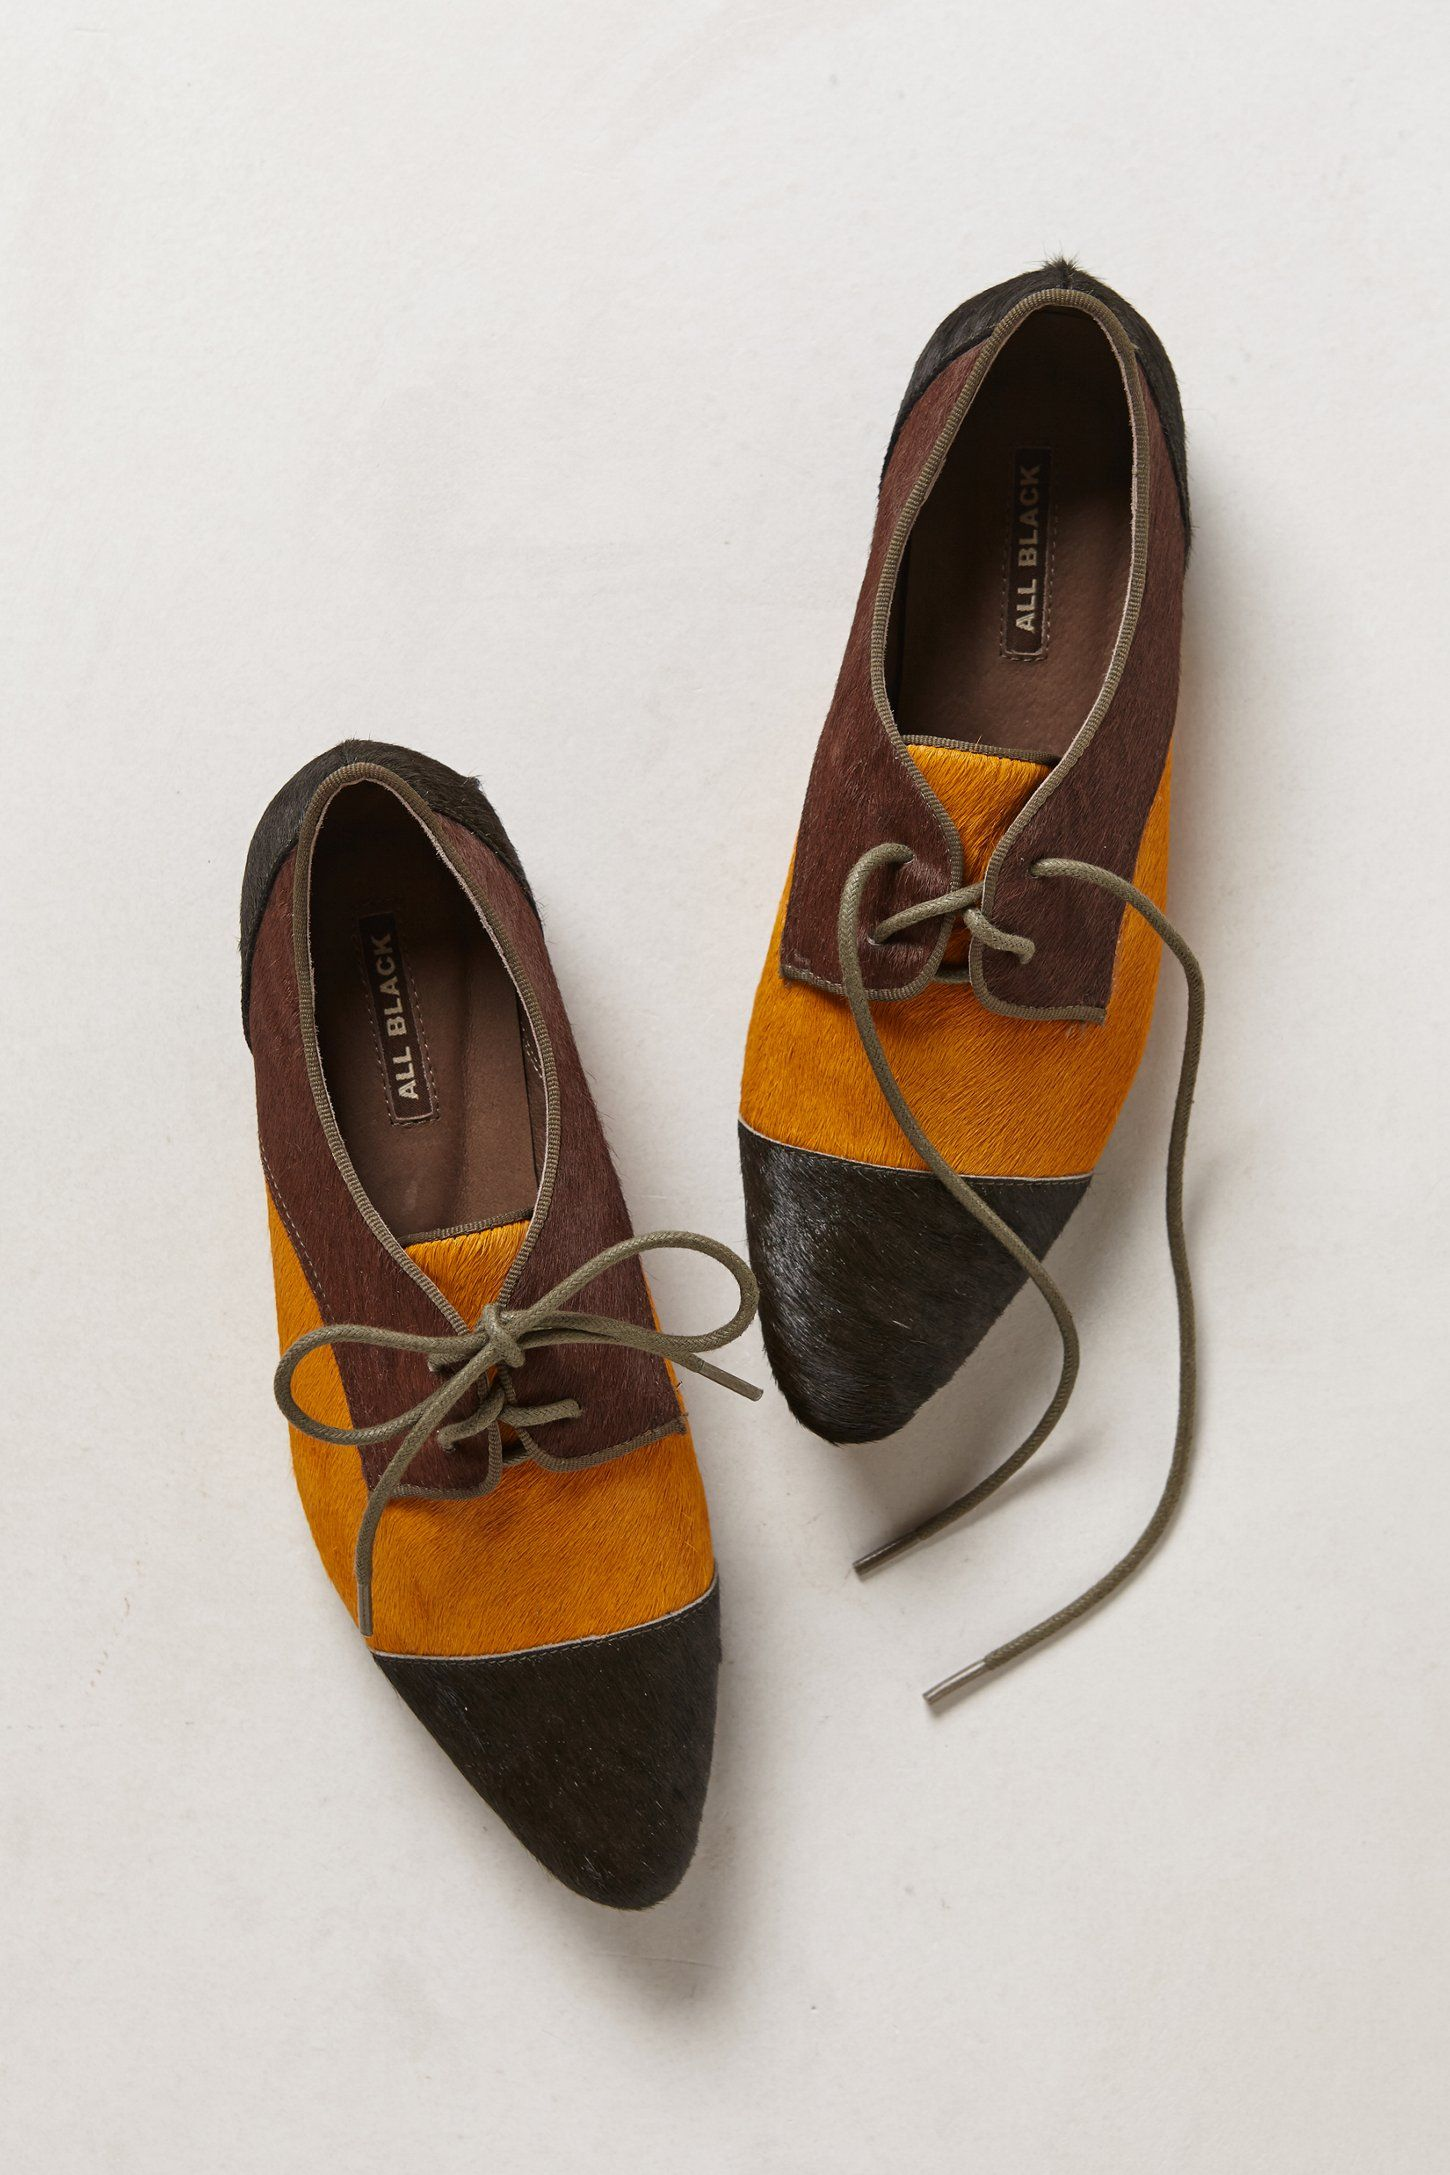 Pointed Pony Hair Oxfords - Anthropologie.com